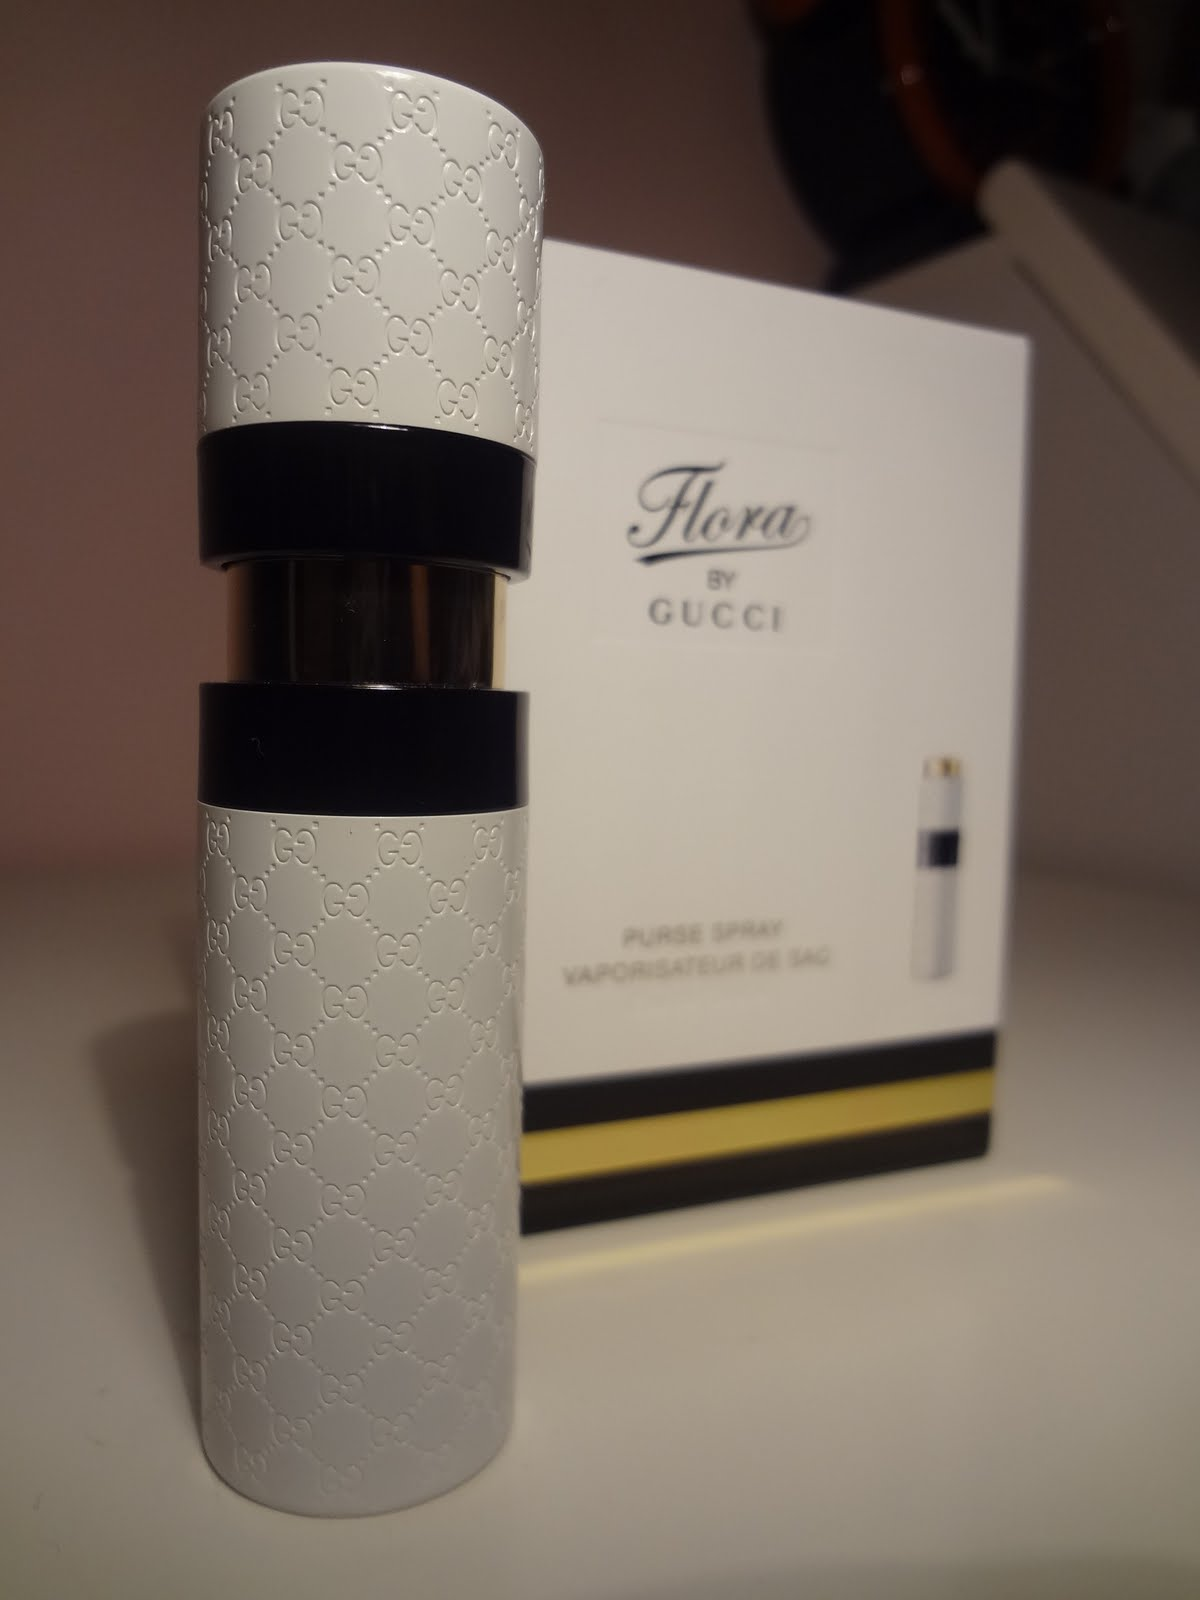 Gucci Gold Perfume The Flora Perfume by Gucci